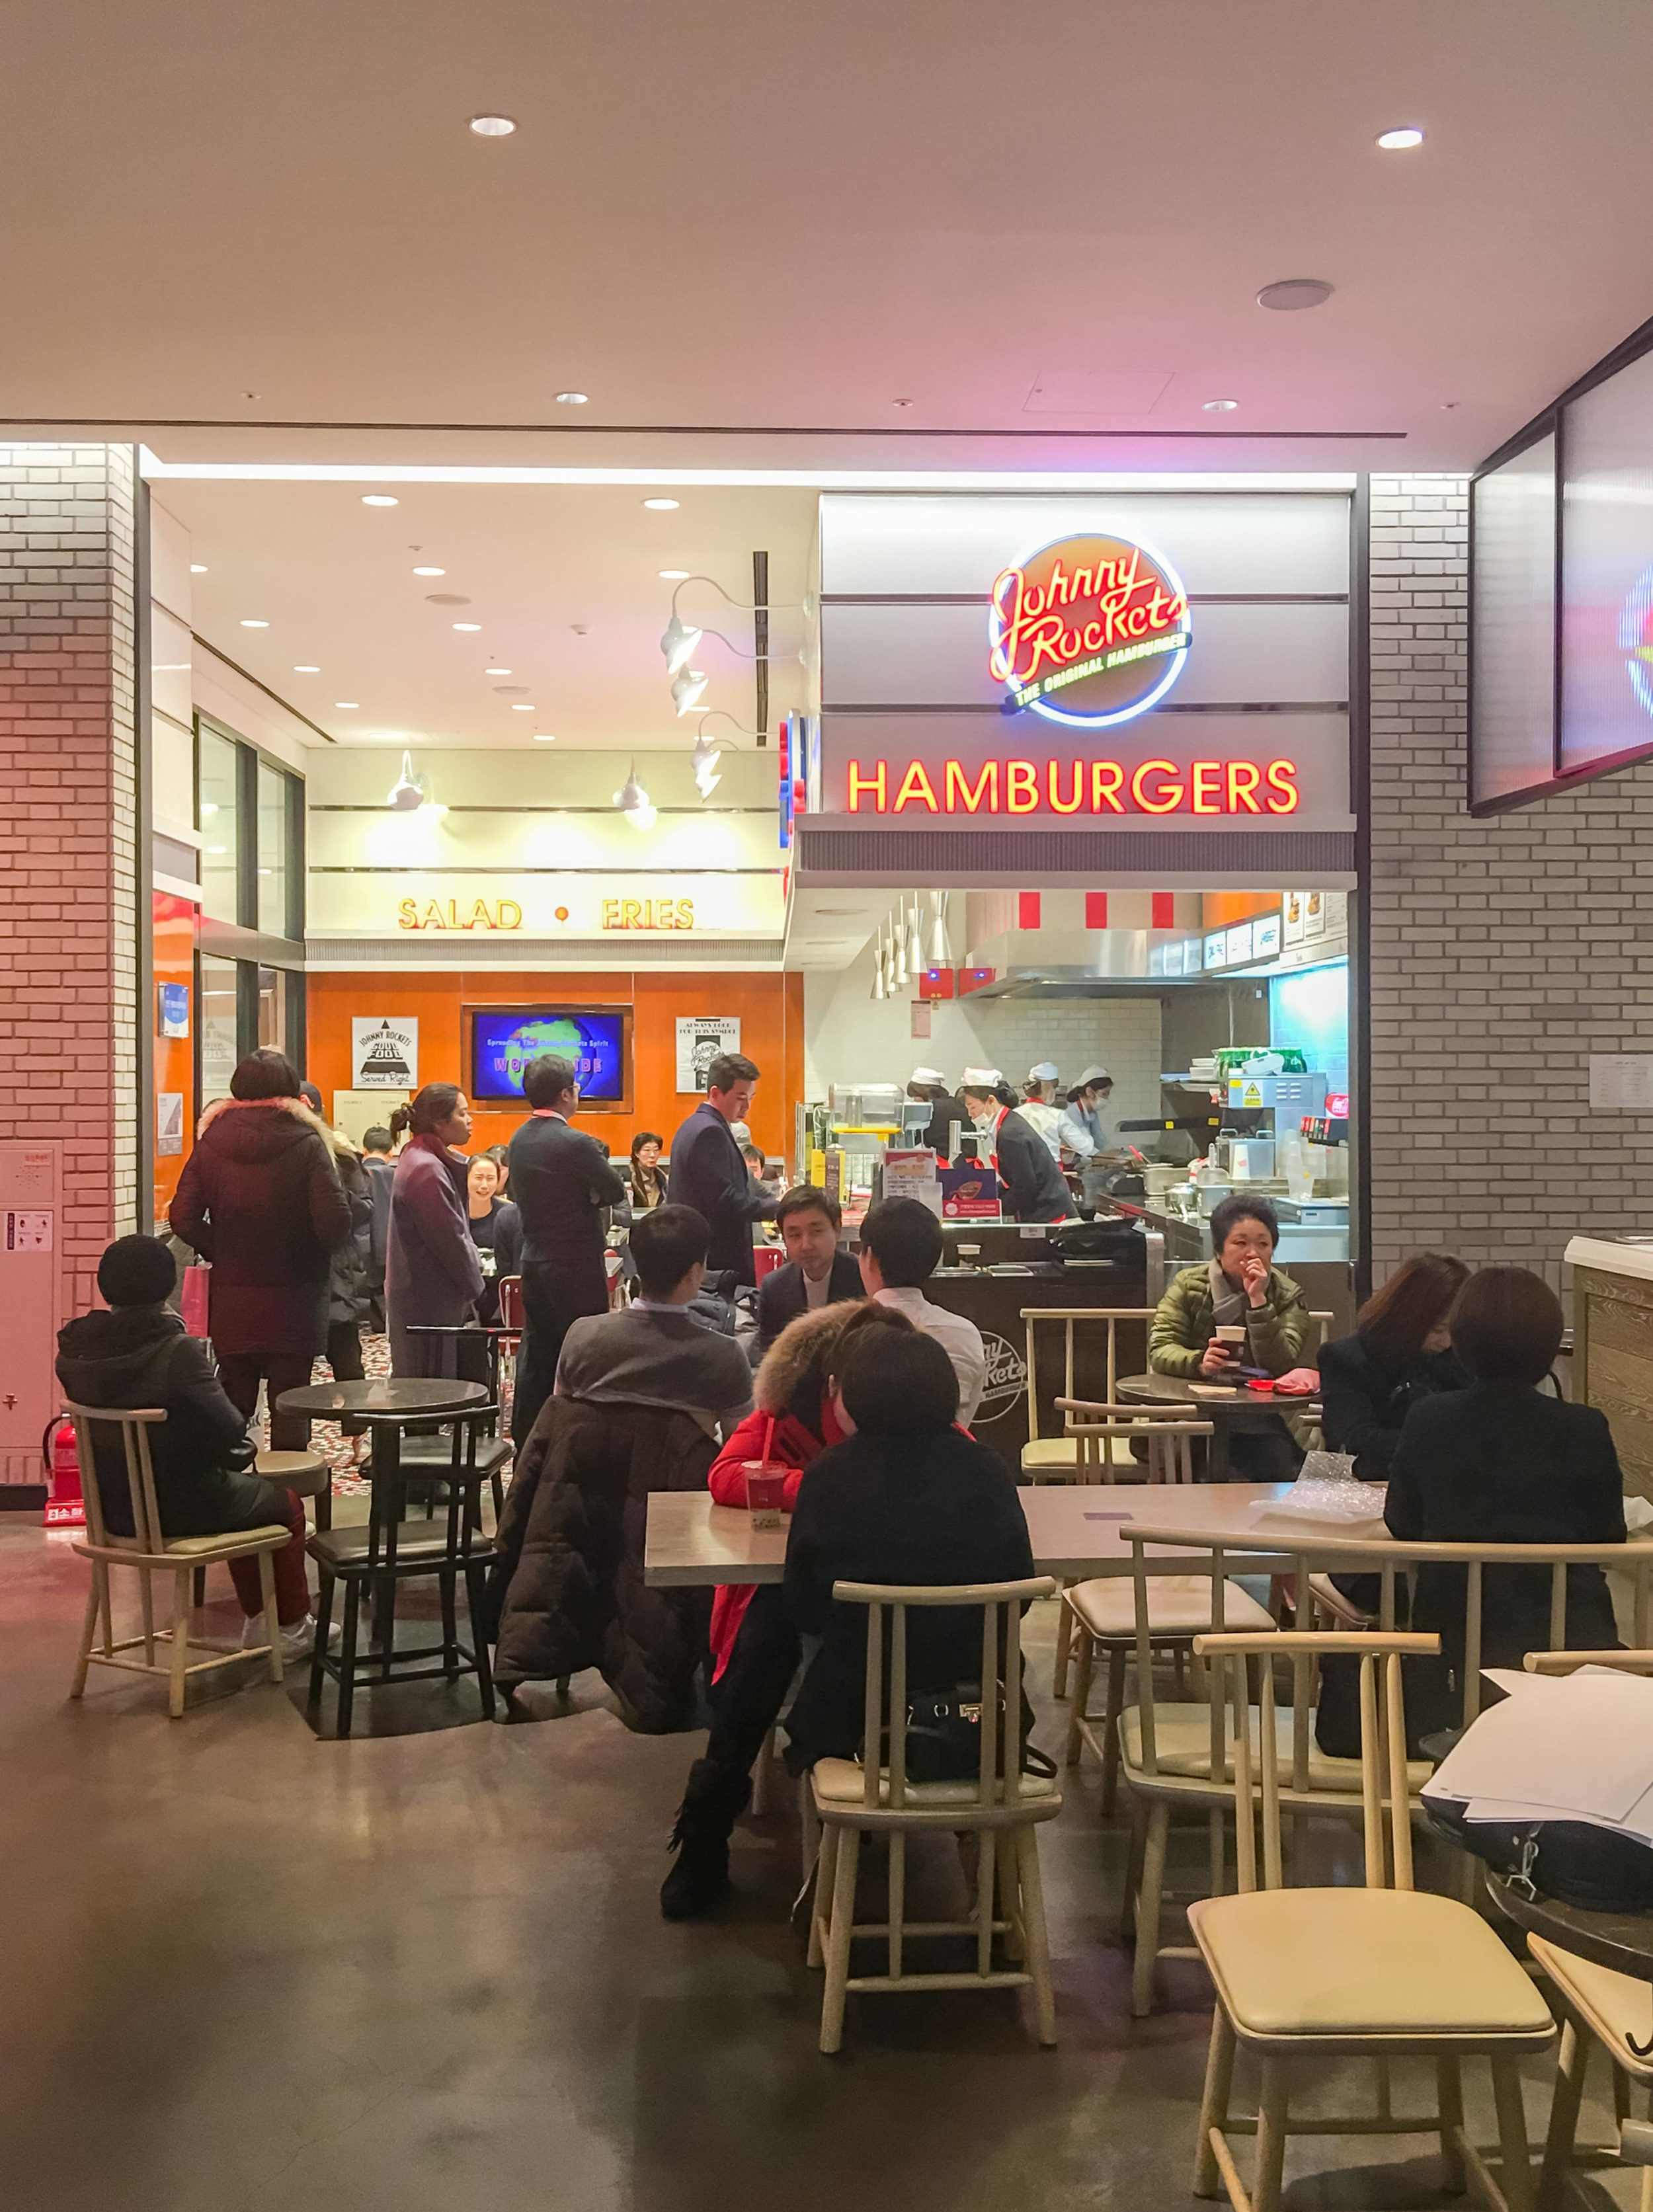 Johnny Rockets is a Western food option inside Shinsegae department store's food hall in Seoul.